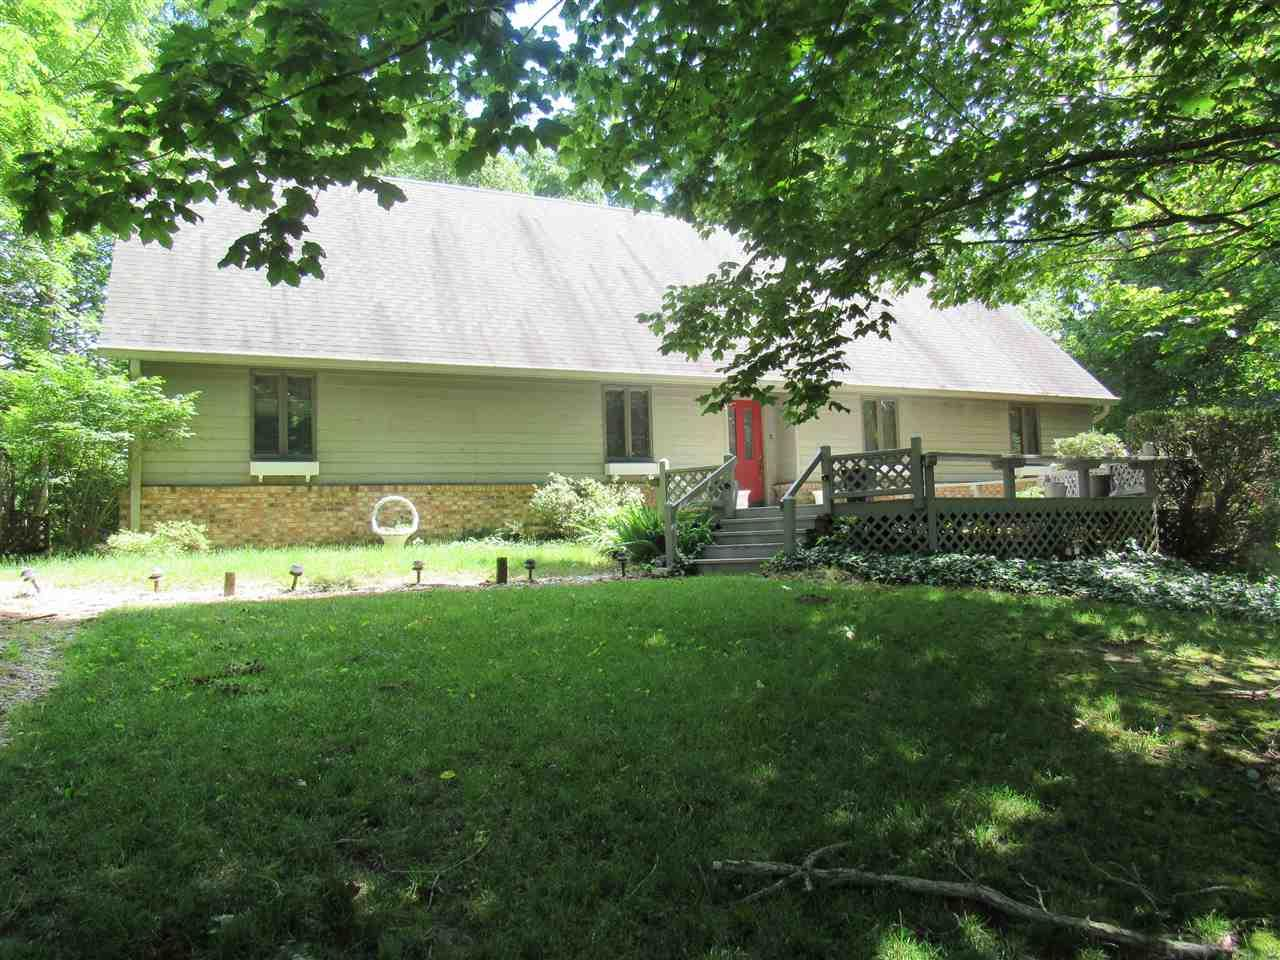 8293 E 50 SOUTH, Greentown, IN 46936